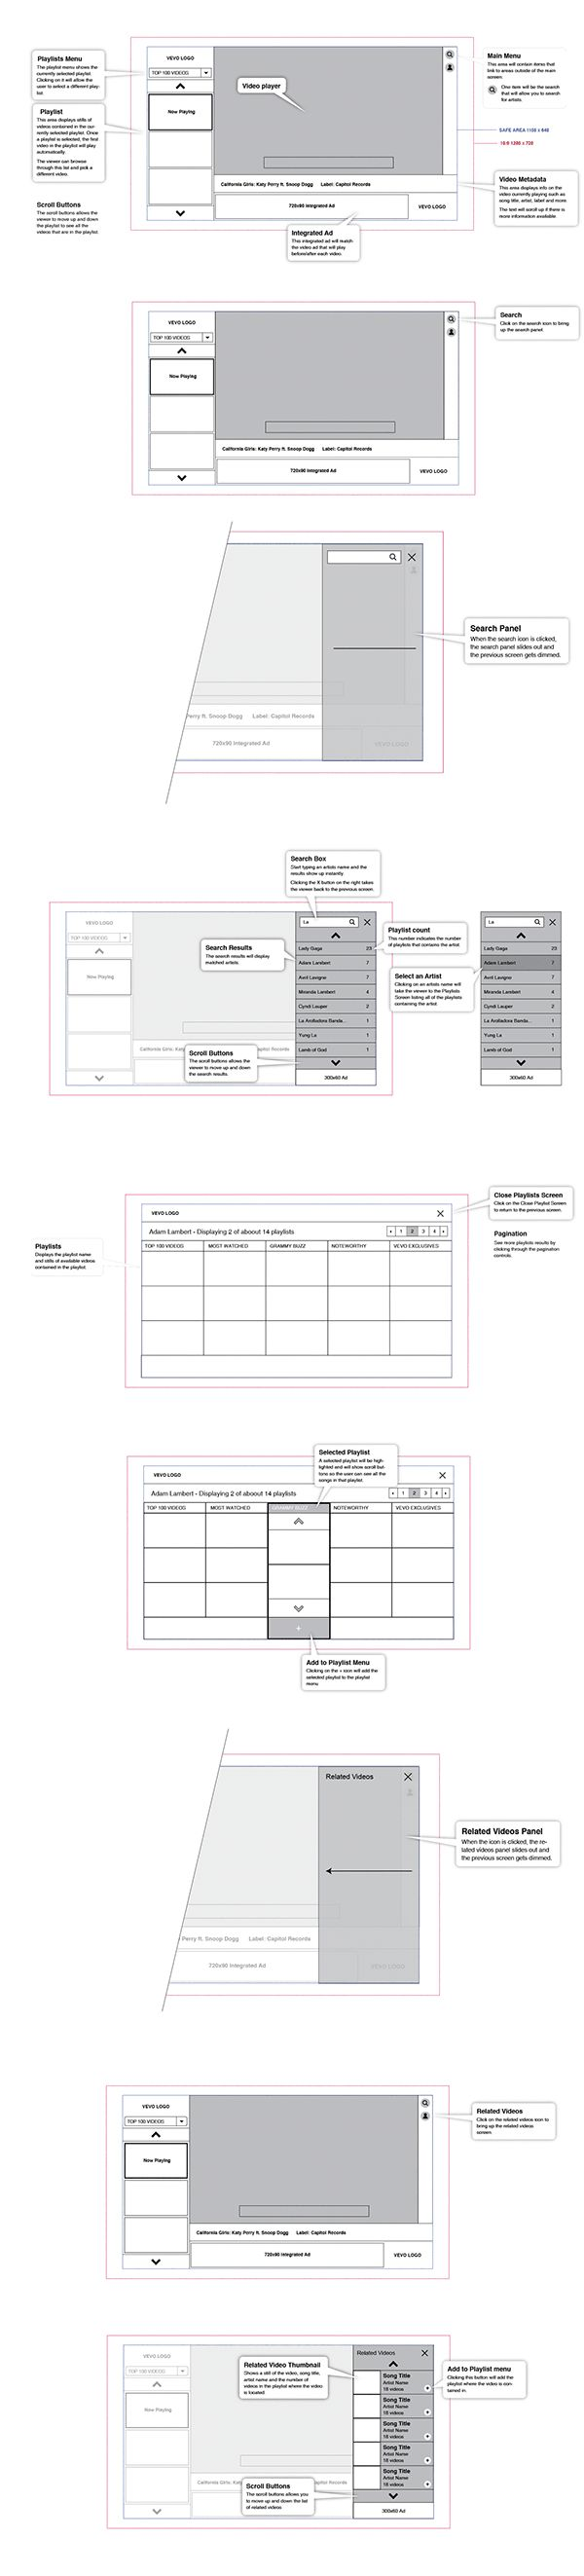 Wireframe example - illustrating range of features and functions